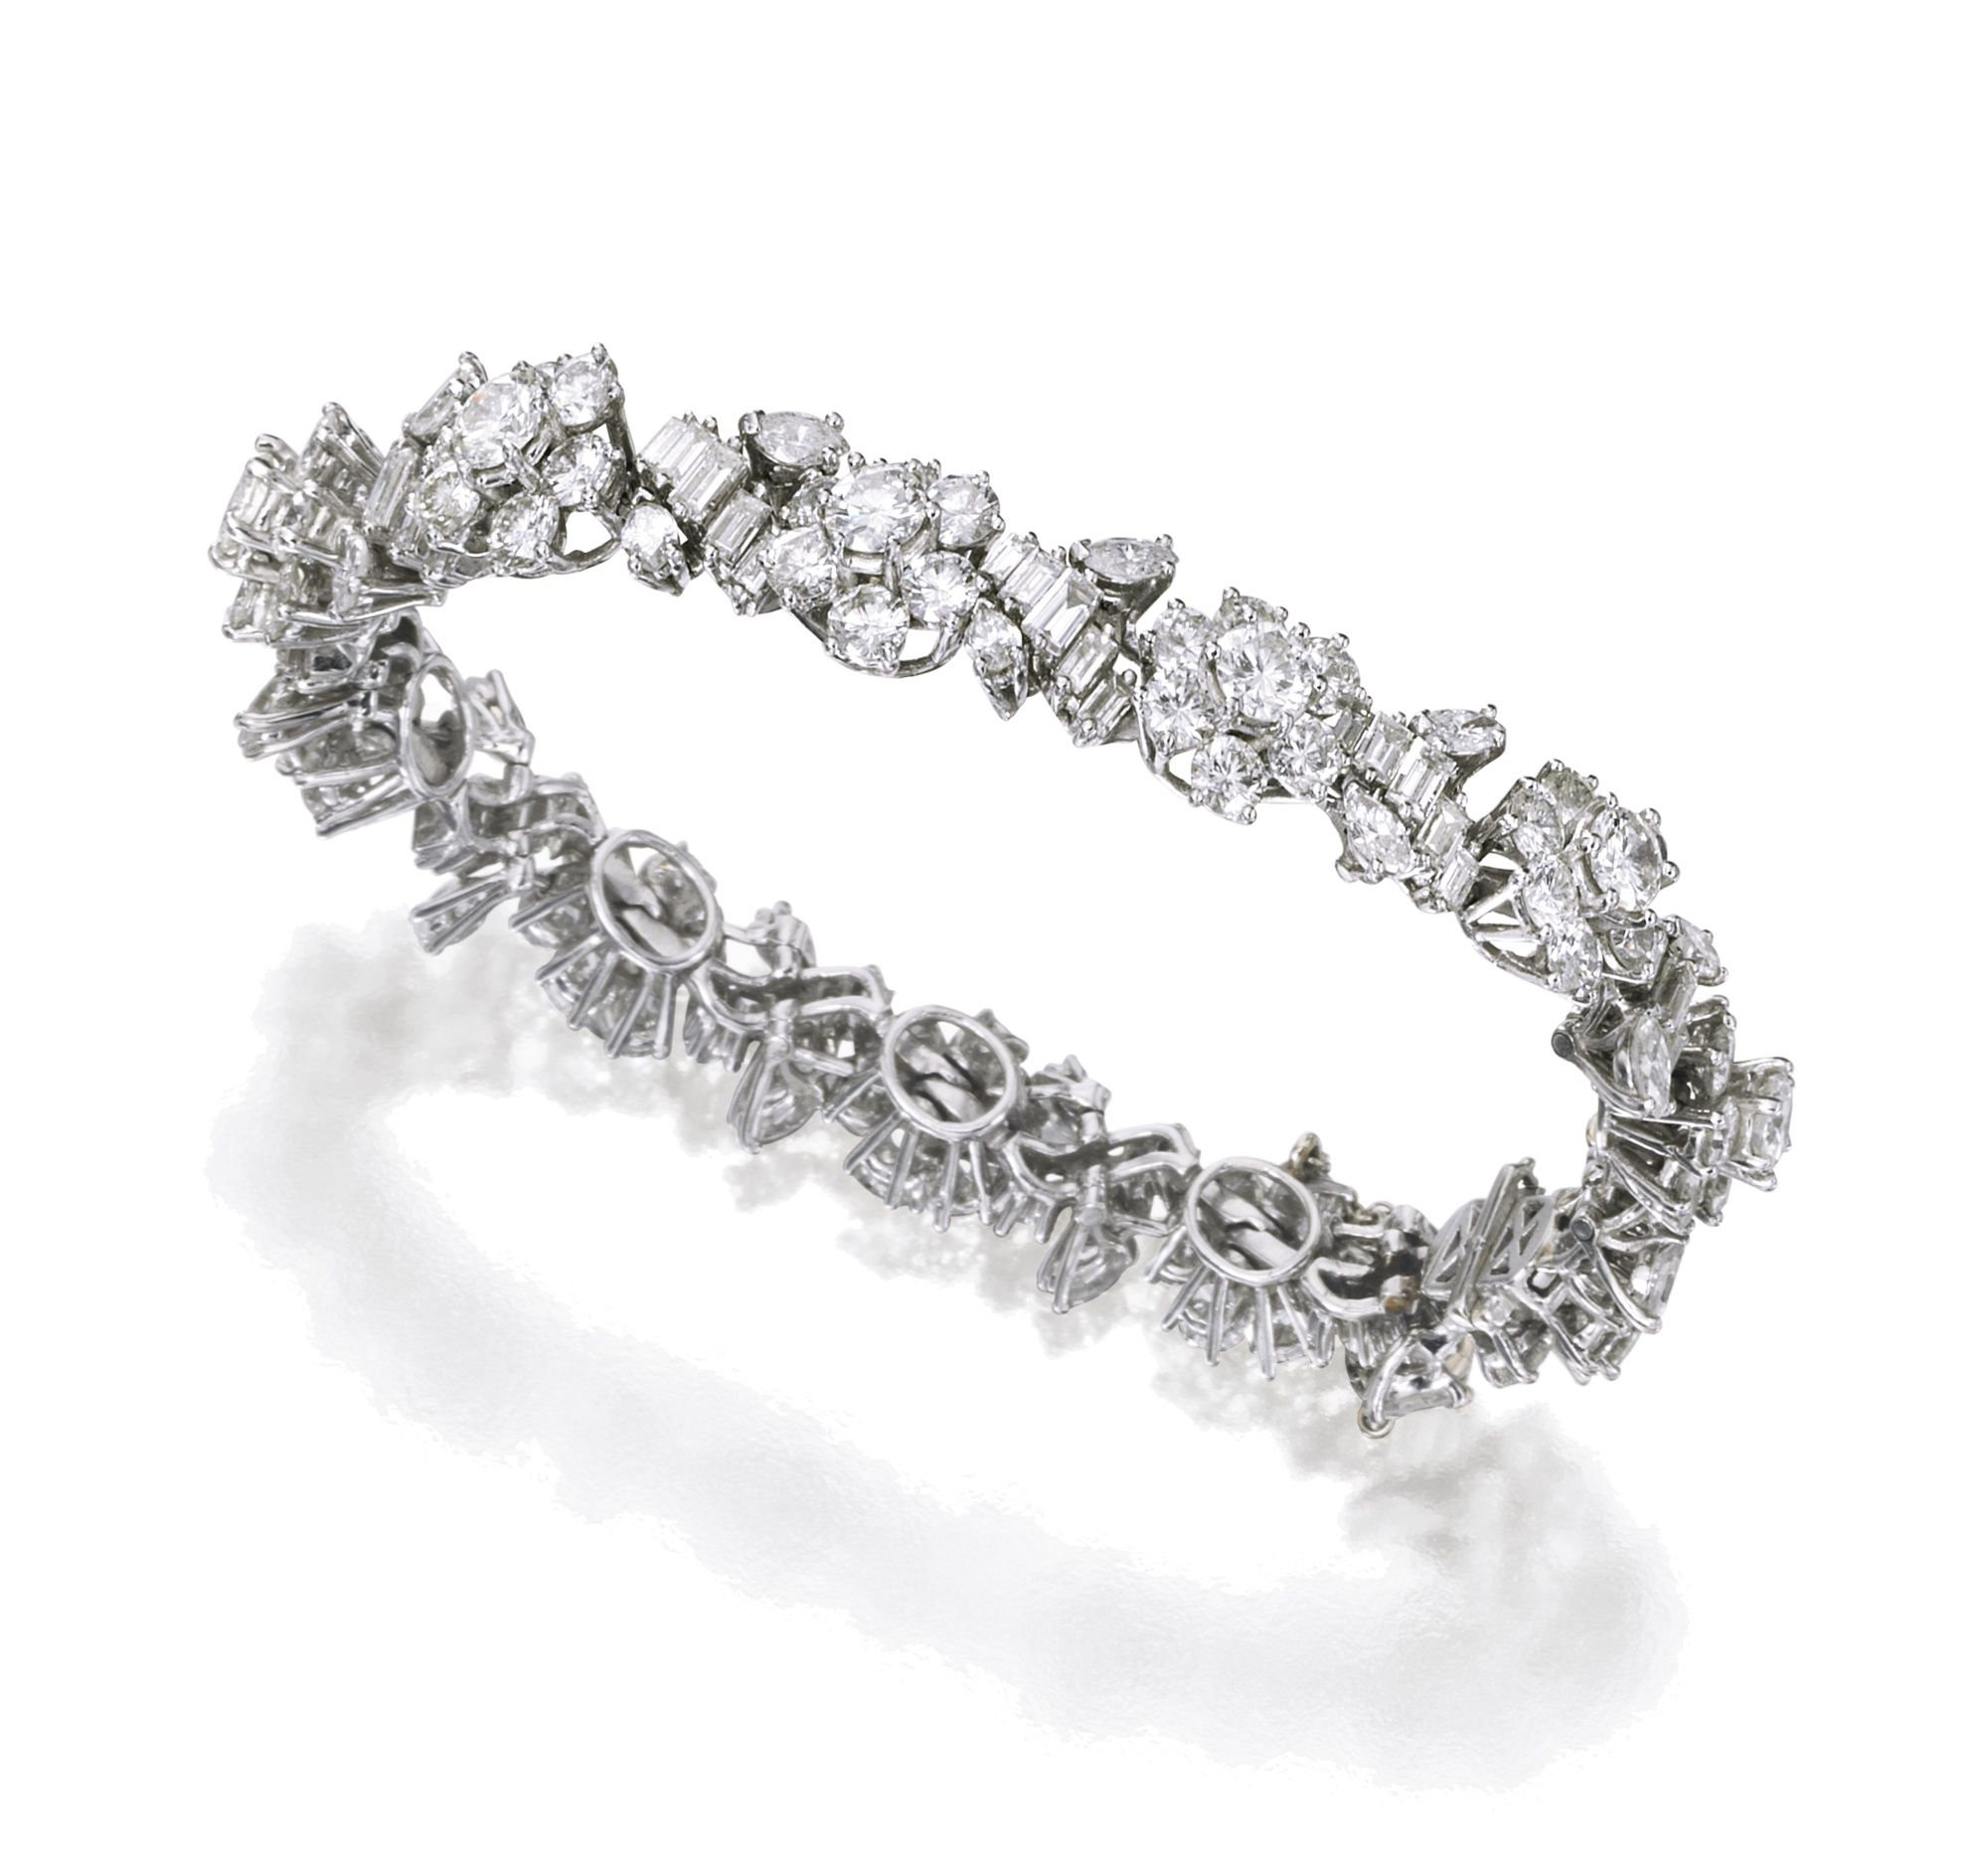 Platinum and diamond bracelet of floral and foliate design set with